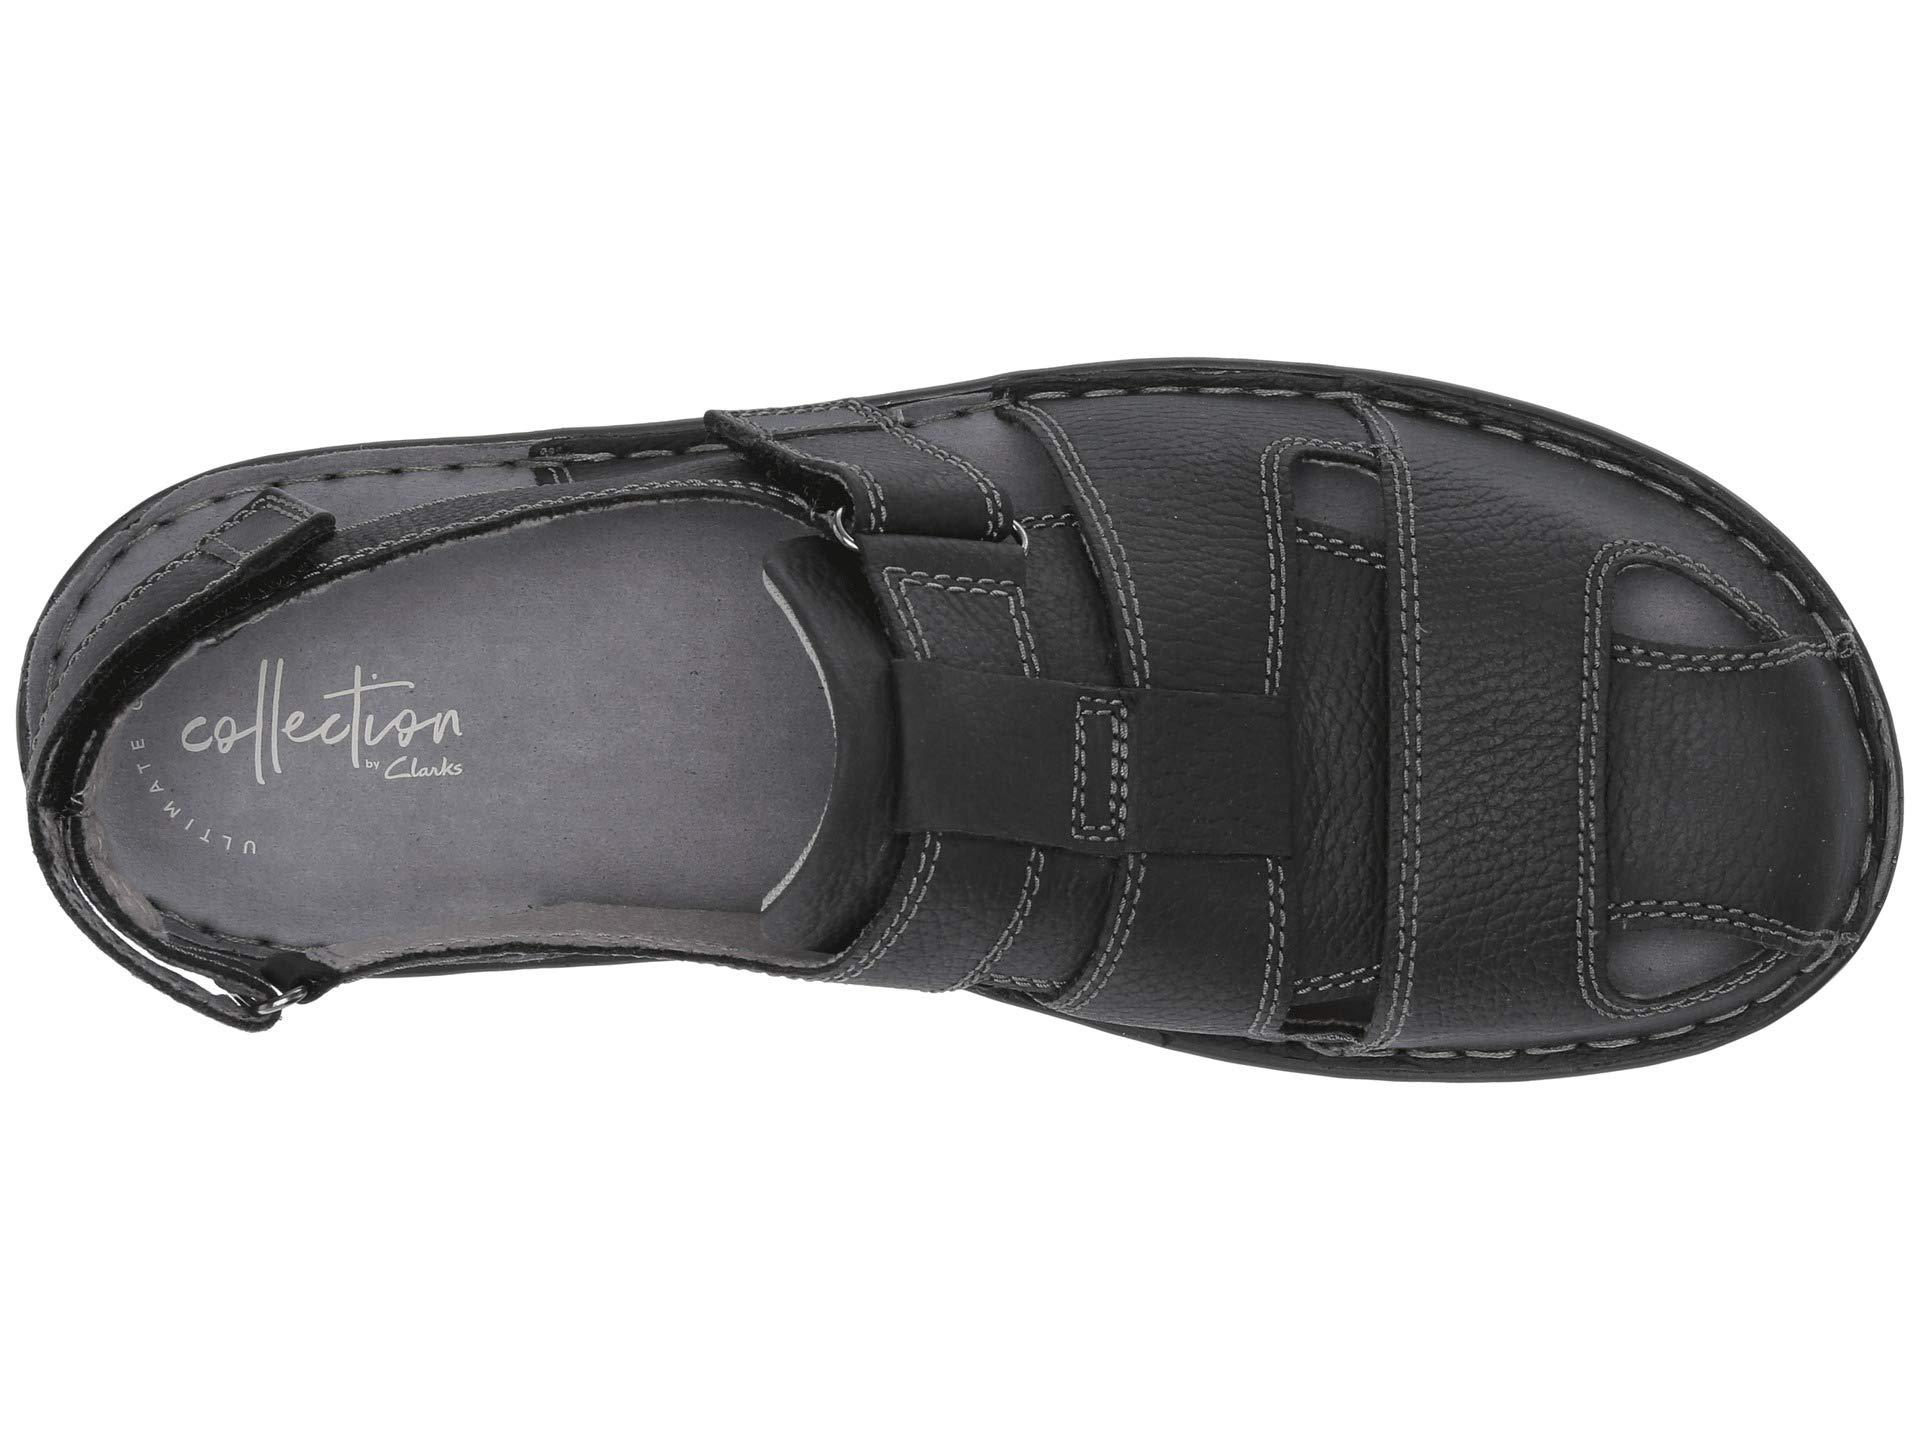 22f202906ac Clarks - Malone Cove (black Tumbled Leather) Men s Shoes for Men - Lyst.  View fullscreen